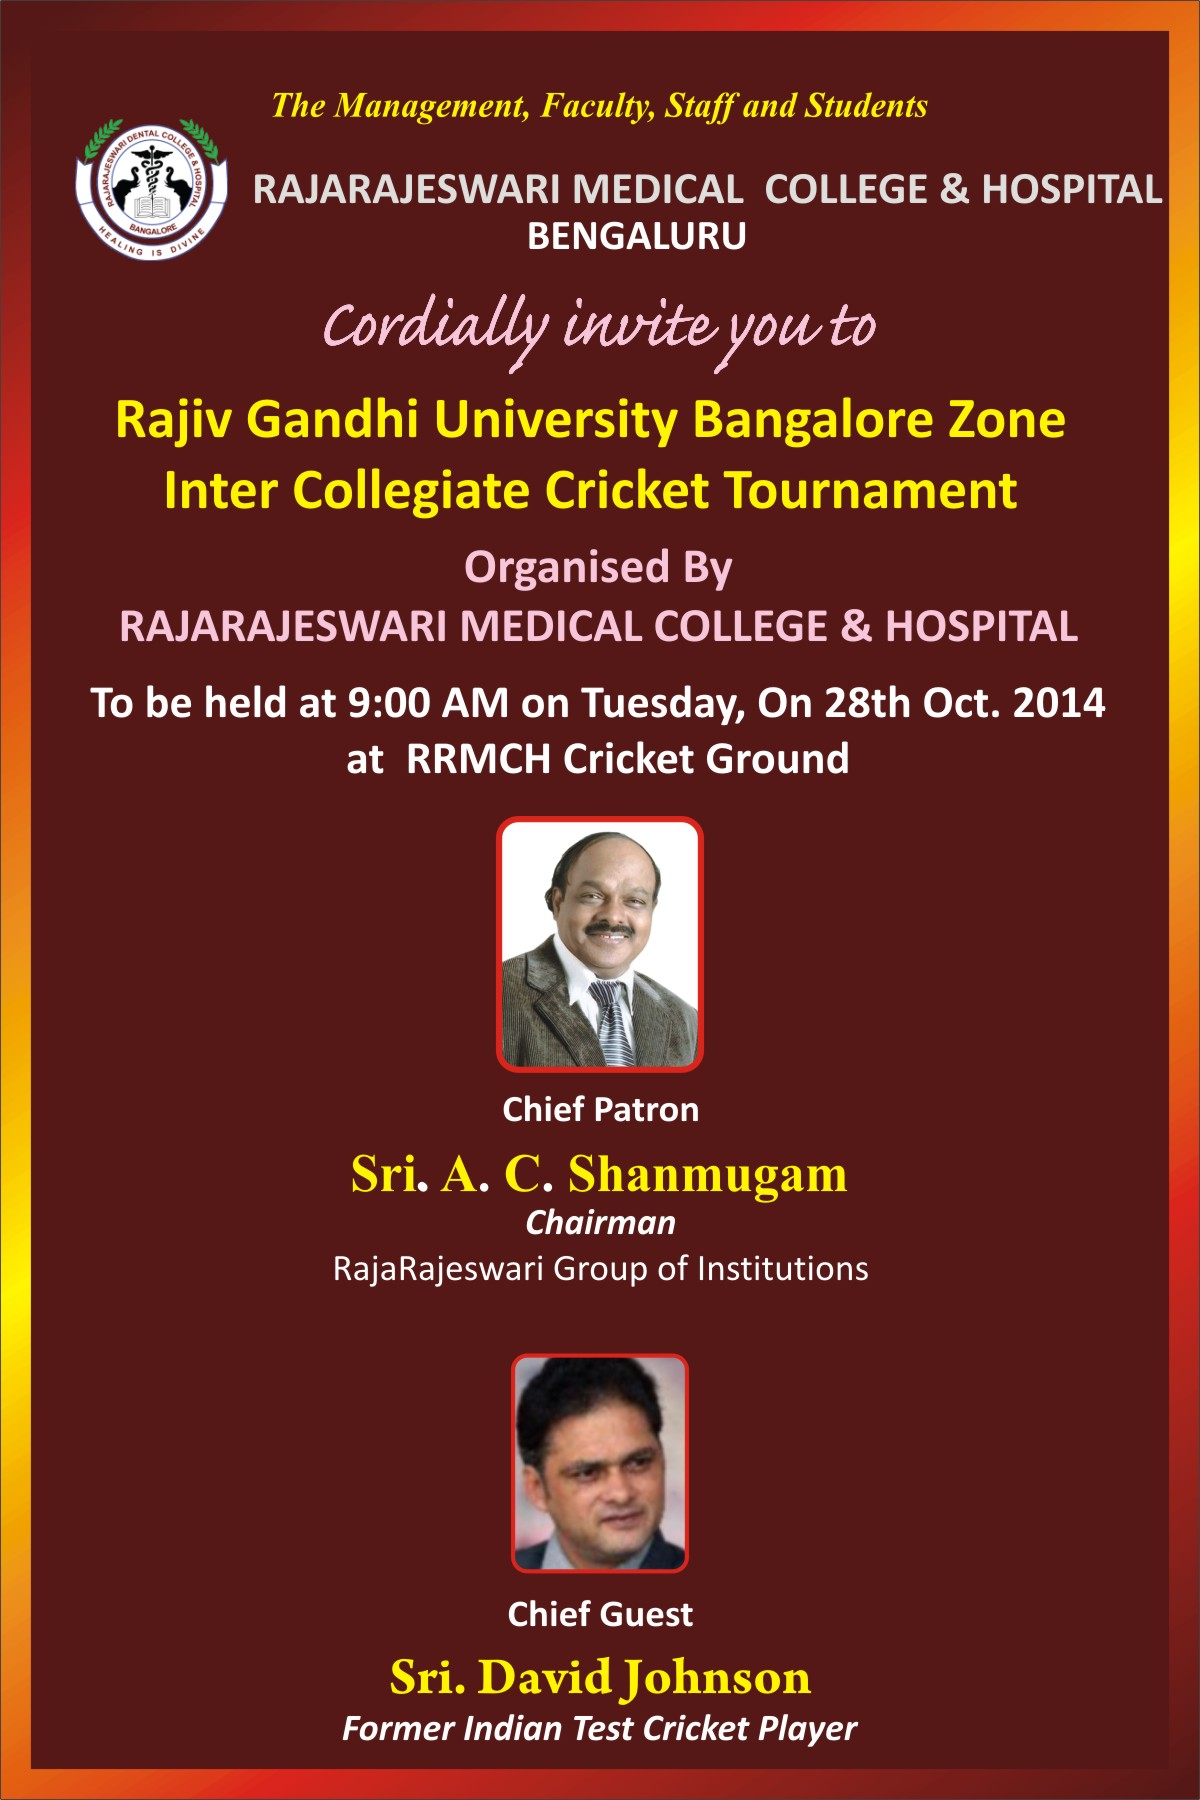 Invitation For Corporate Cricket Tournament: Inter Collegiate Cricket Tournament